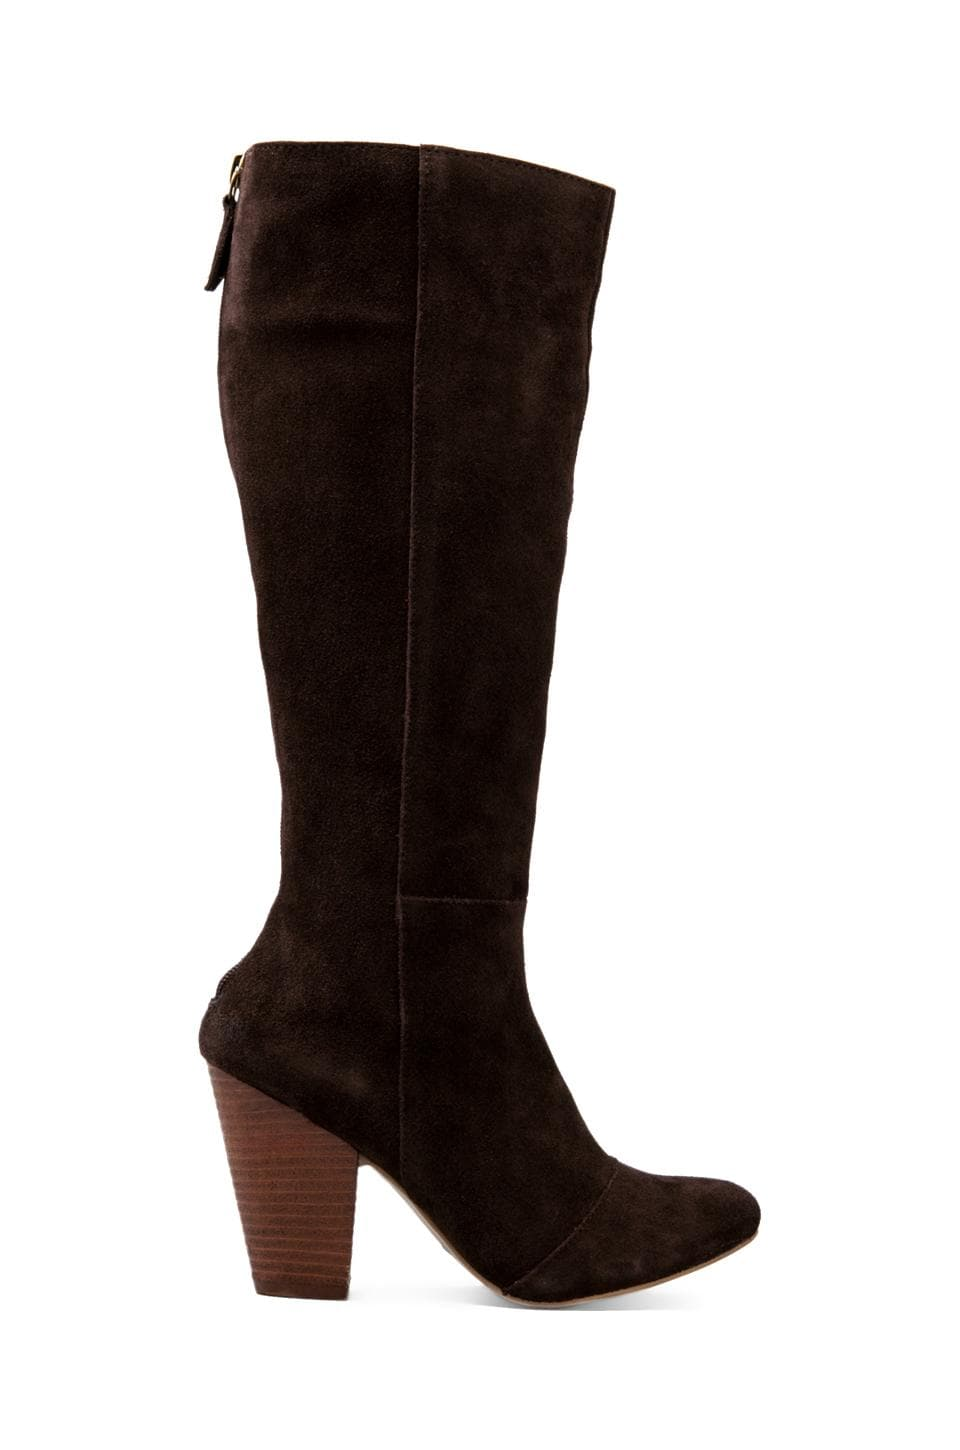 Matisse Savannah Boot in Chocolate